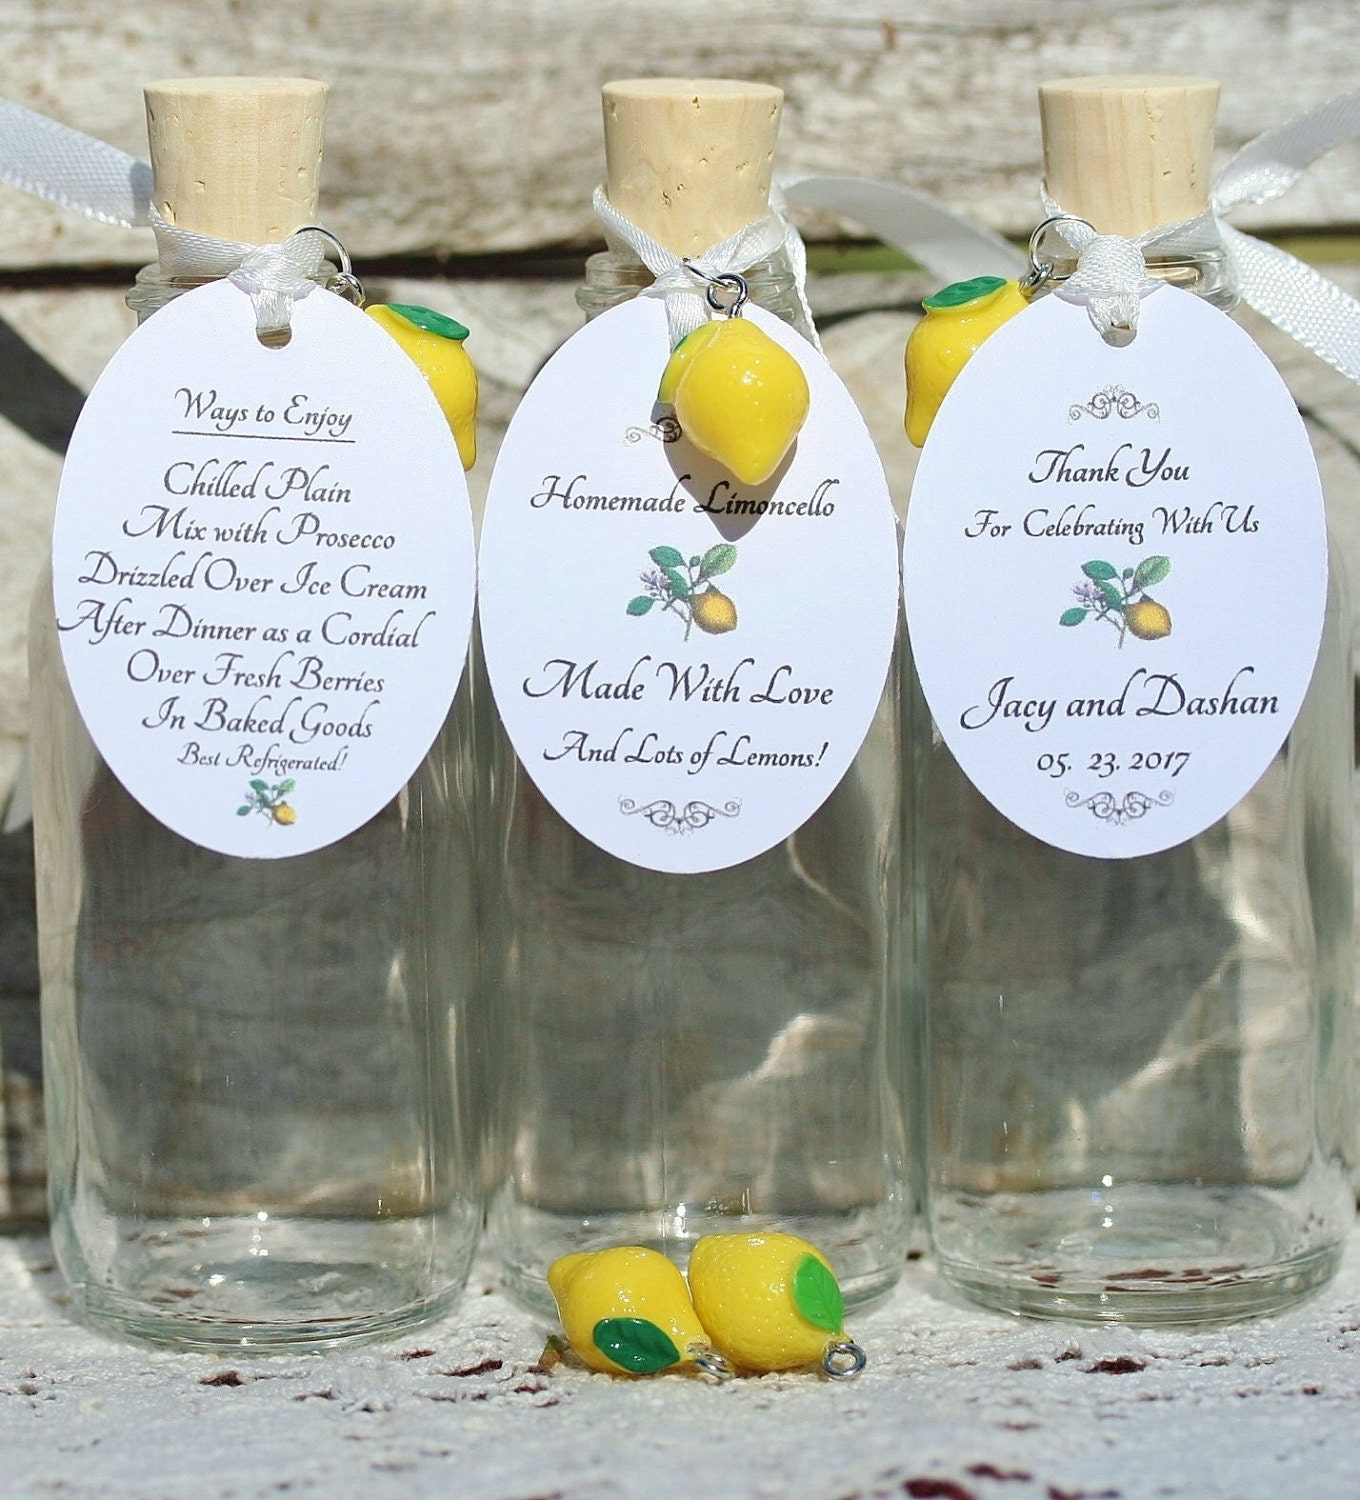 10 Custom Tags And 10 Lemon Charms Limoncello Tags Yellow Lemon Charms Limoncello Favors Customized Limoncello Tags Order As Many Needed